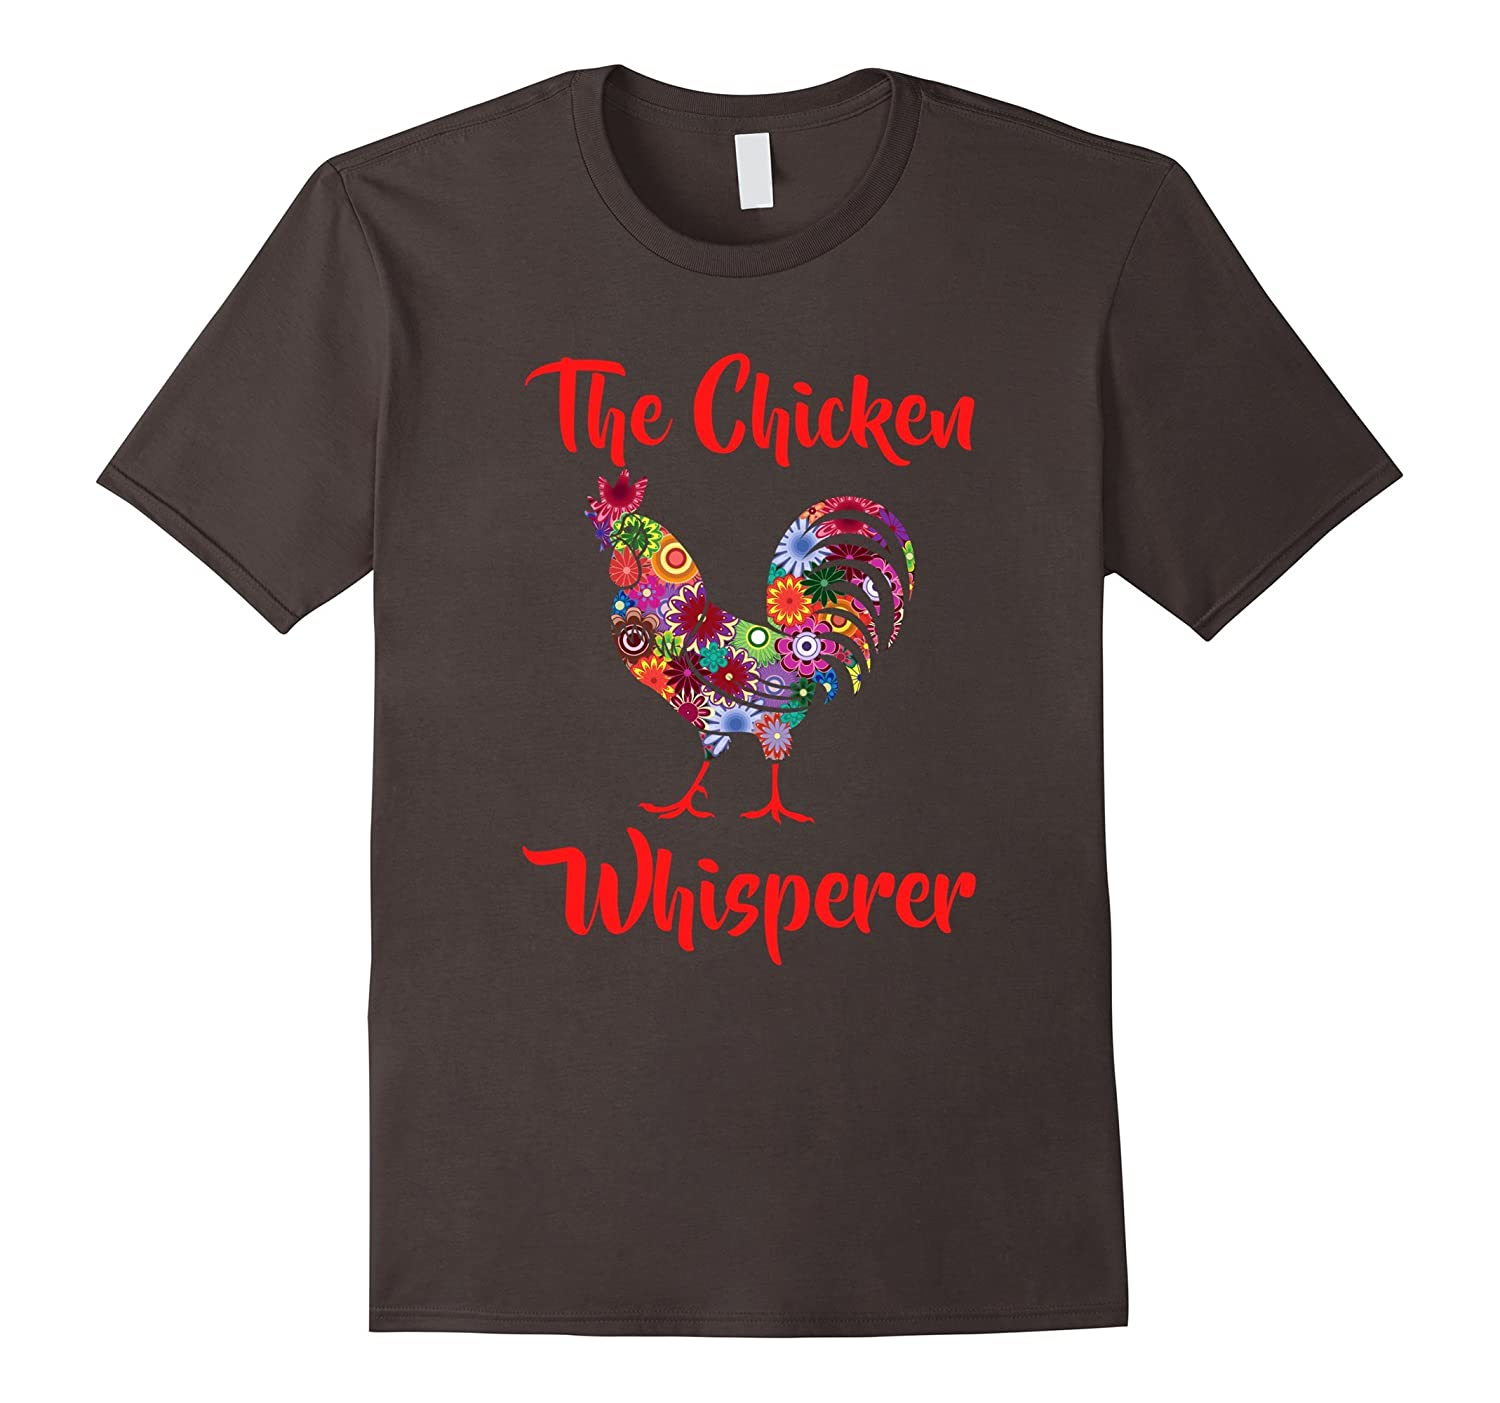 The Chicken Whisperer Funny Farmer Farming Colorful T-Shirt-BN